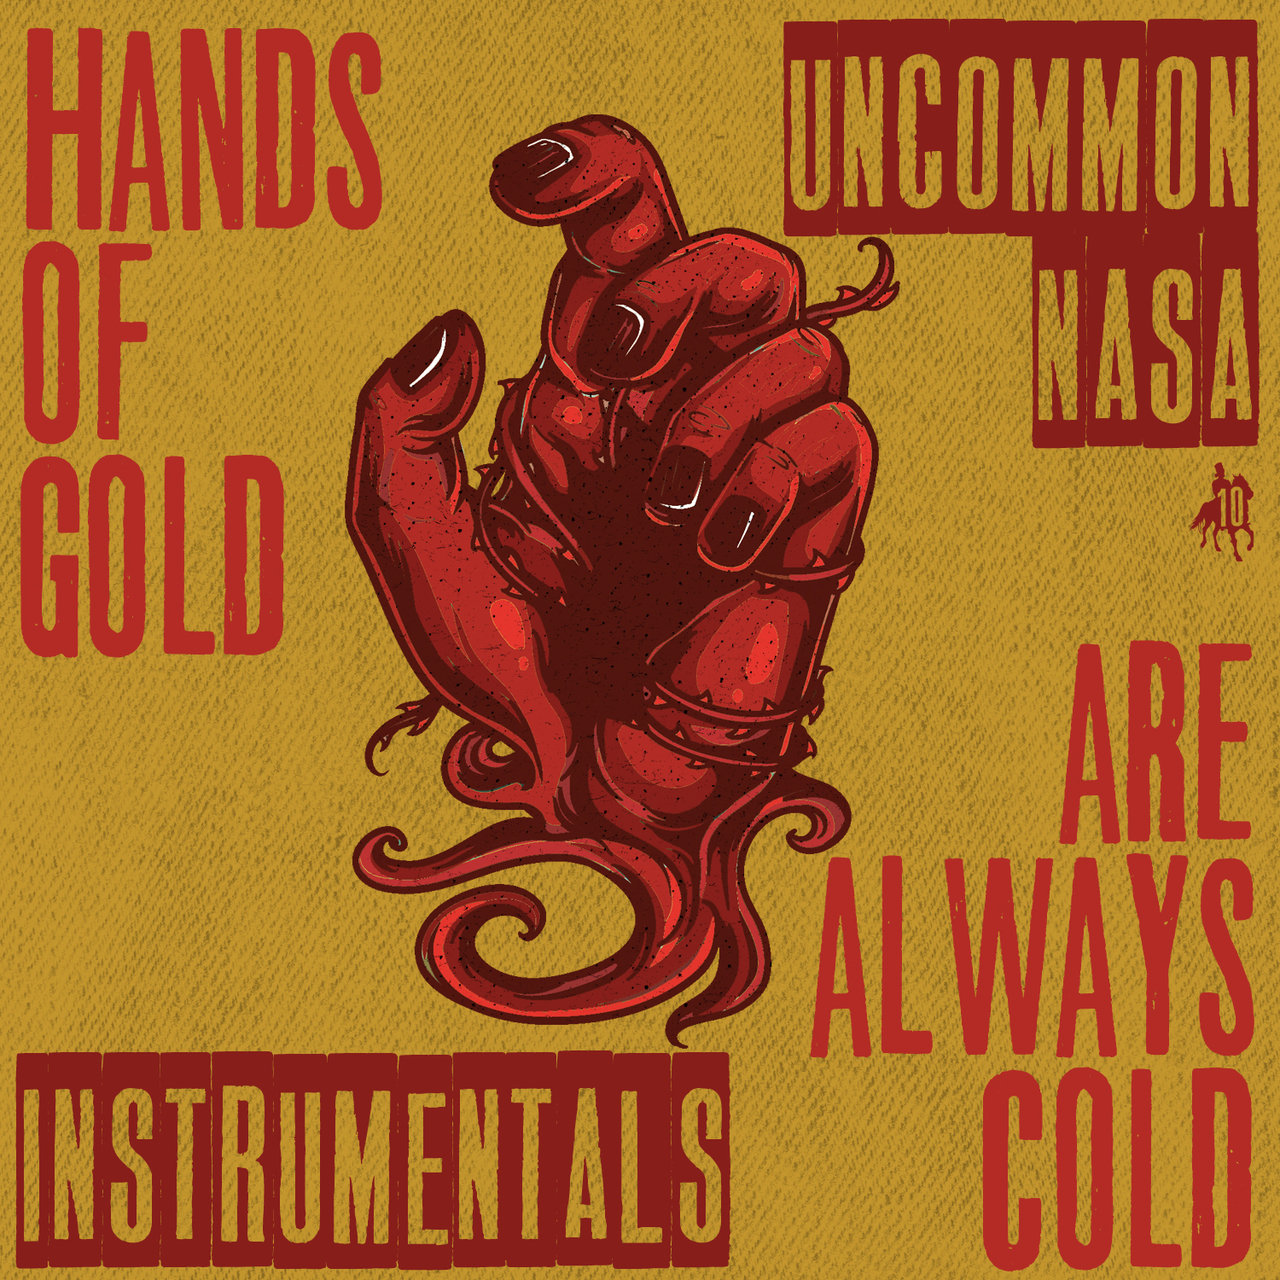 Hands of Gold Are Always Cold (Instrumentals)